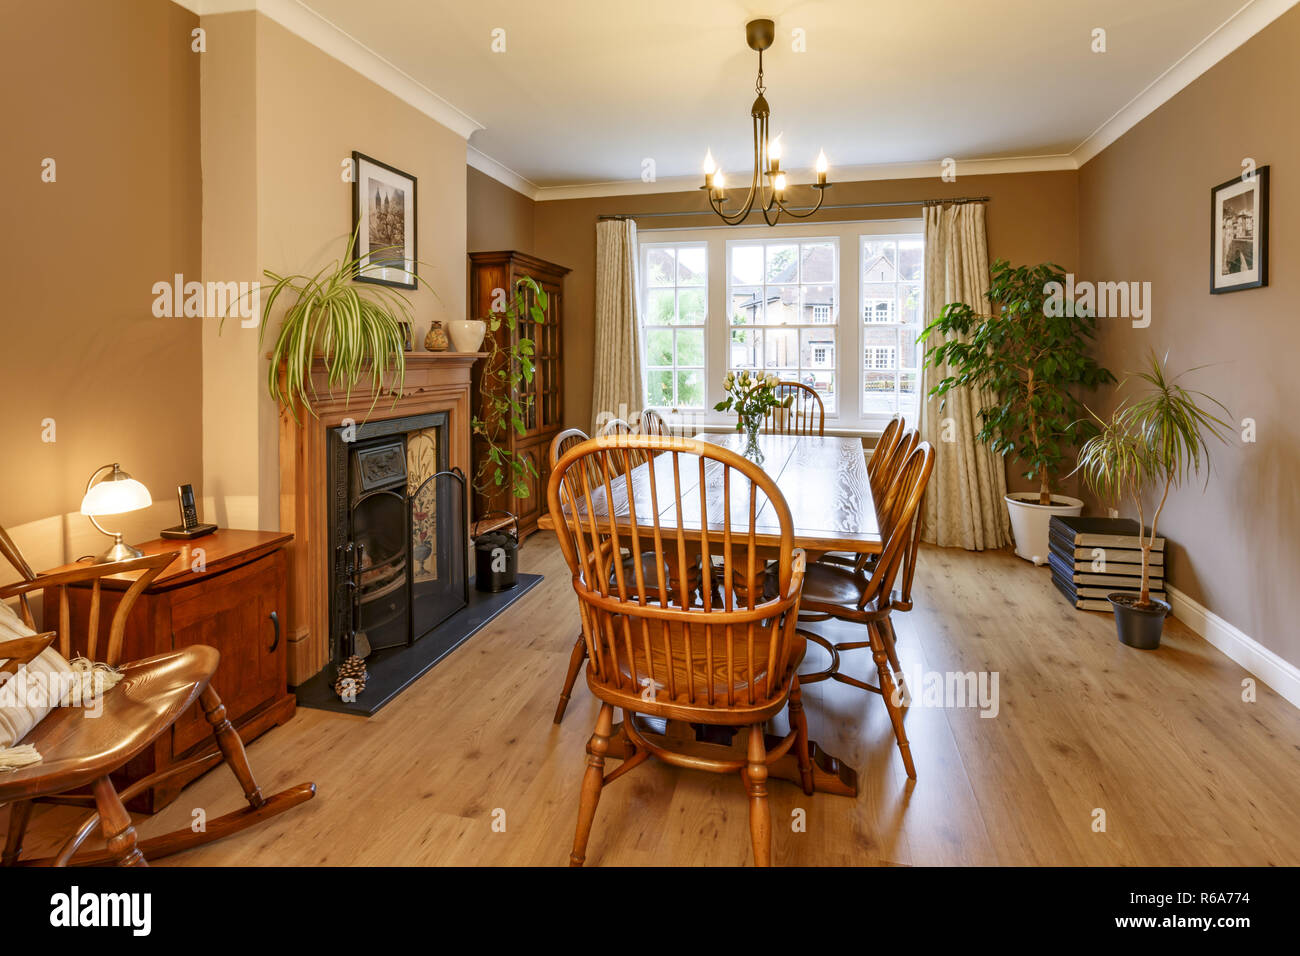 Traditional dining room interior with fireplace, wooden furniture, table and chairs - Stock Image